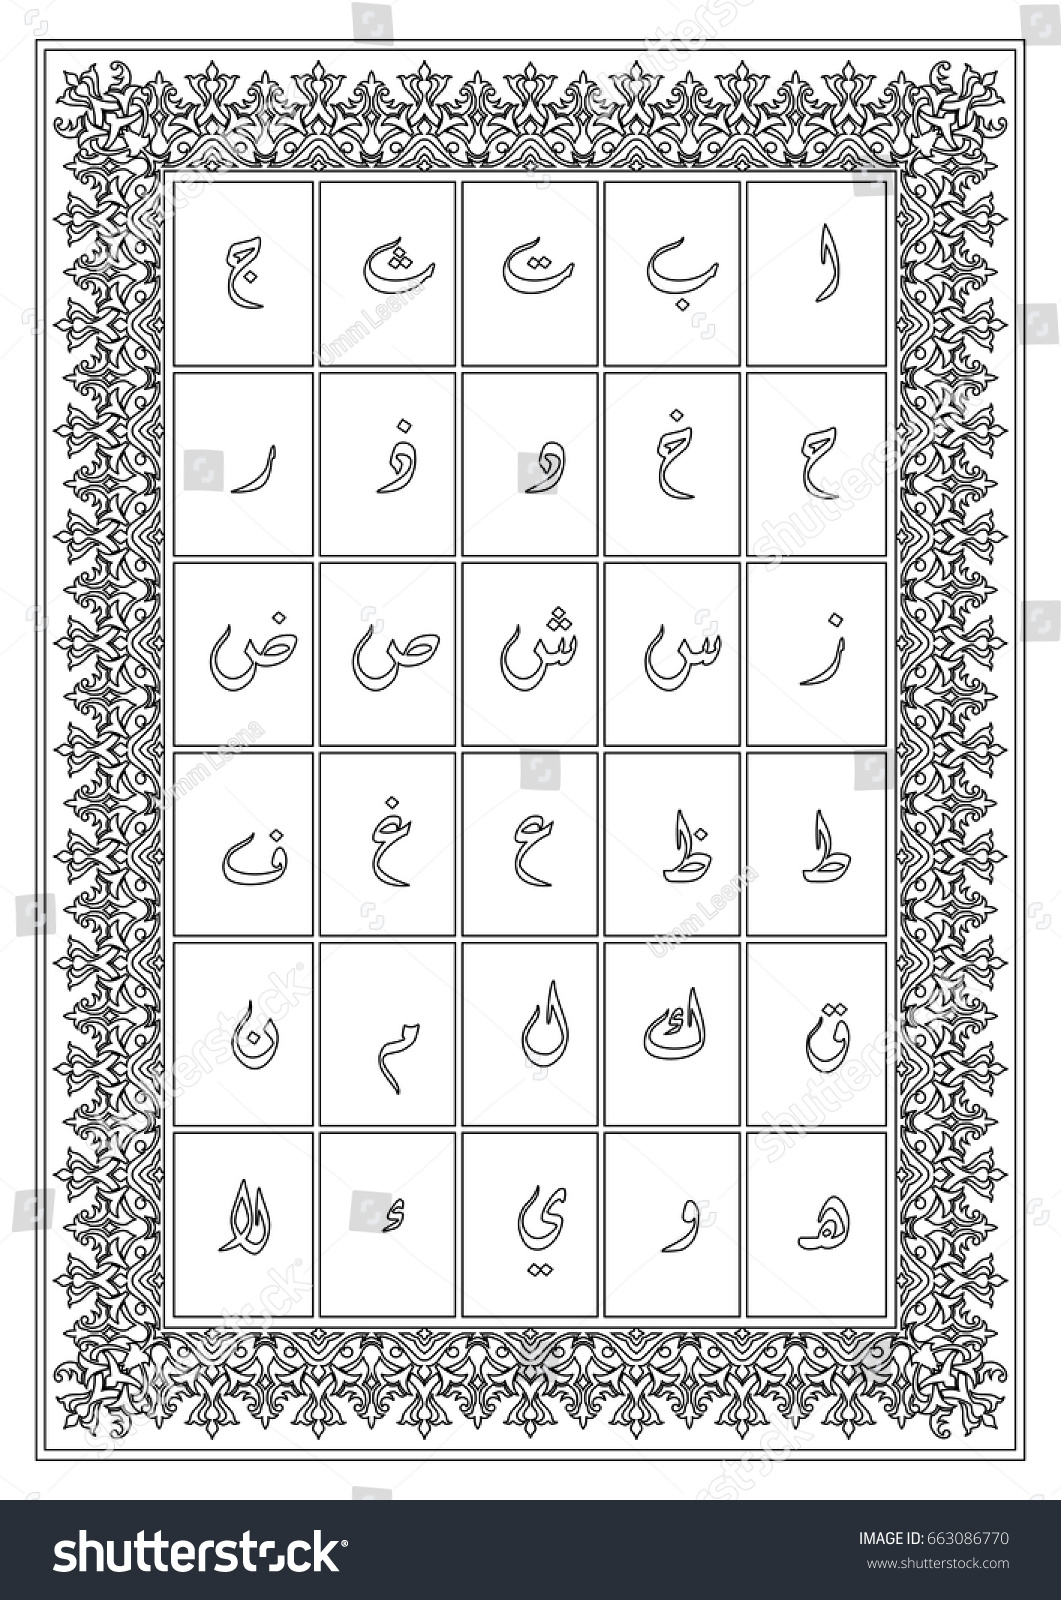 Arabic Alphabet Rectangle Frame Arabesque Coloring Stock Vector ...